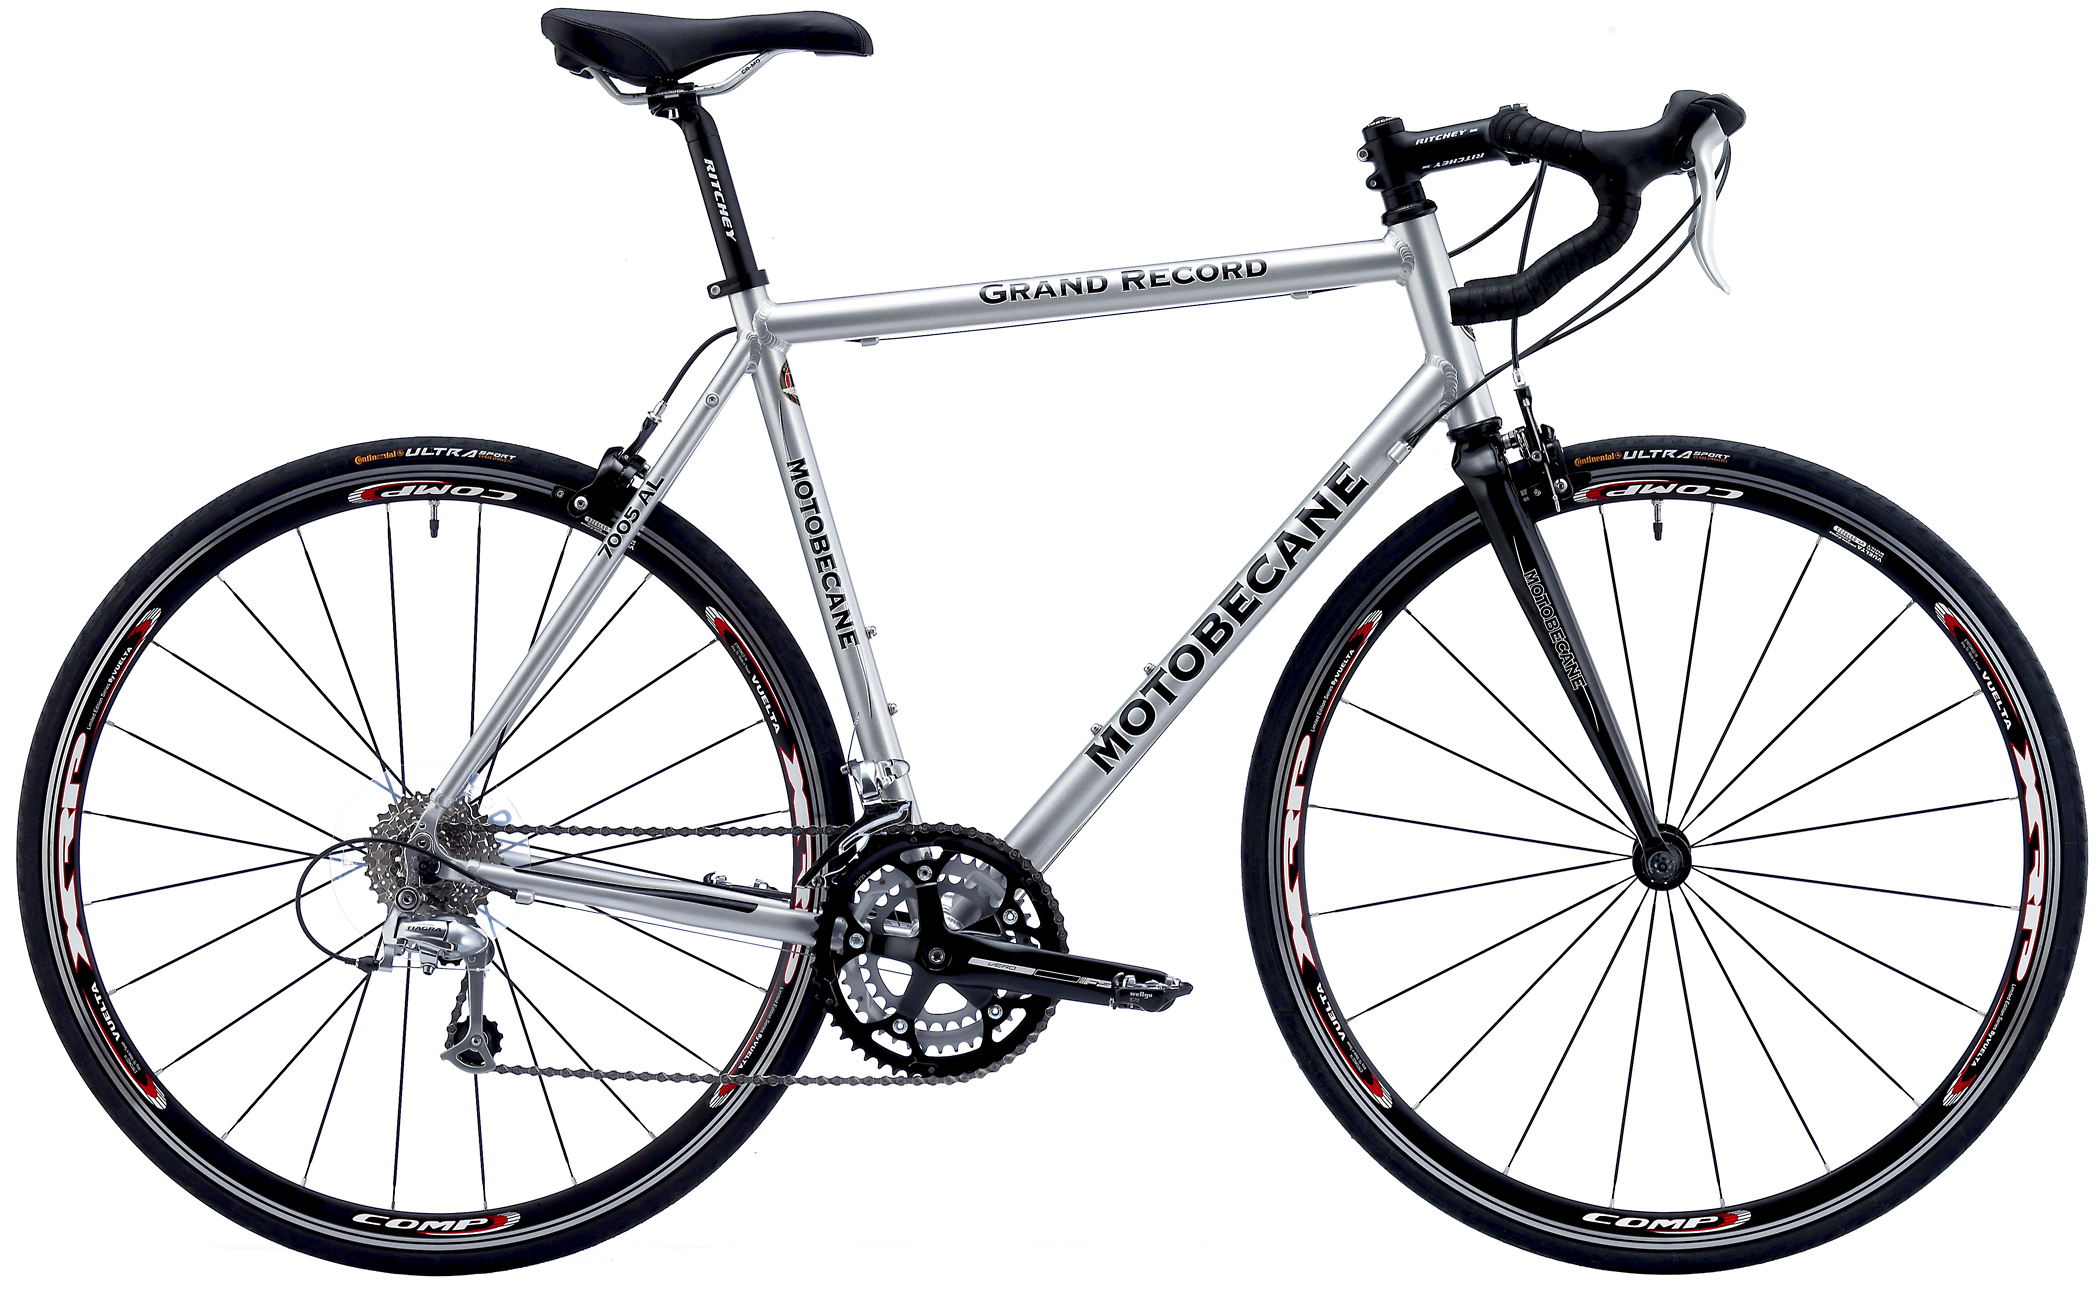 Bikesdirect Motobecane Reviews Motobecane Grand Record